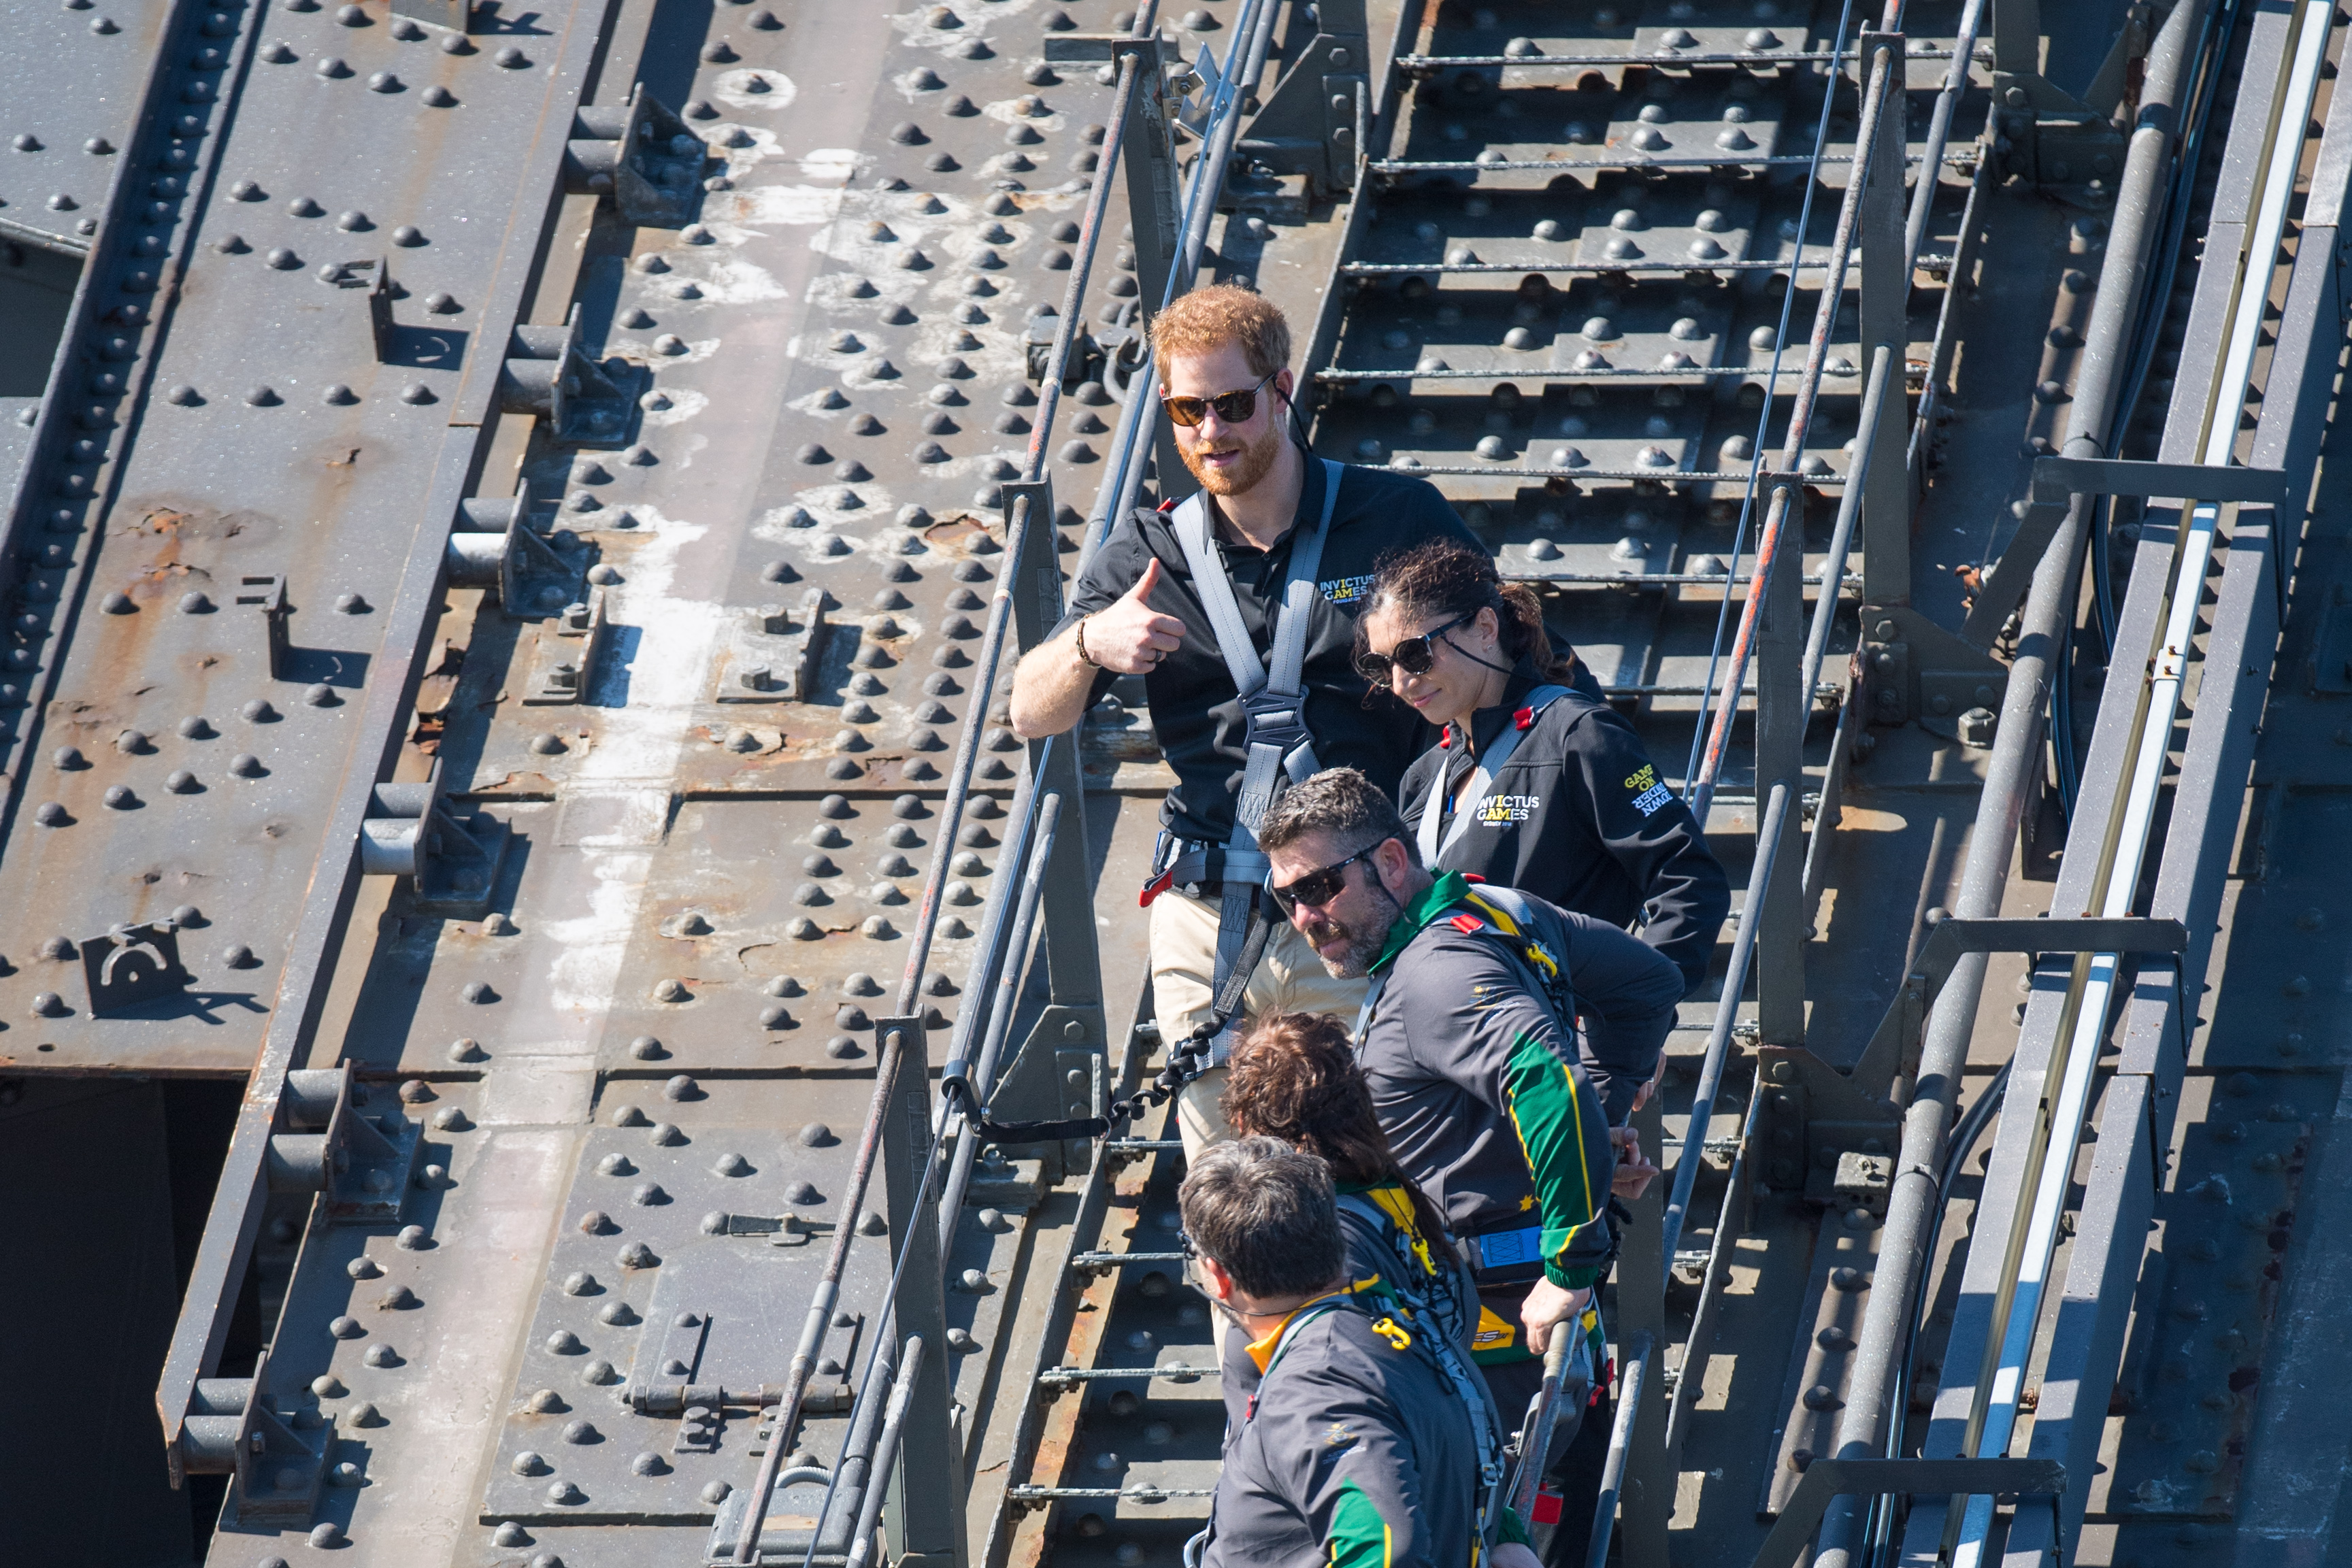 Prince Harry, Duke of Sussex climbs the Sydney Harbour Bridge with Prime Minister of Australia Scott Morrison and Invictus Games competitors on October 19, 2018, in Sydney, Australia. The Duke and Duchess of Sussex are on their official 16-day Autumn tour visiting cities in Australia, Fiji, Tonga, and New Zealand. (Getty Images)